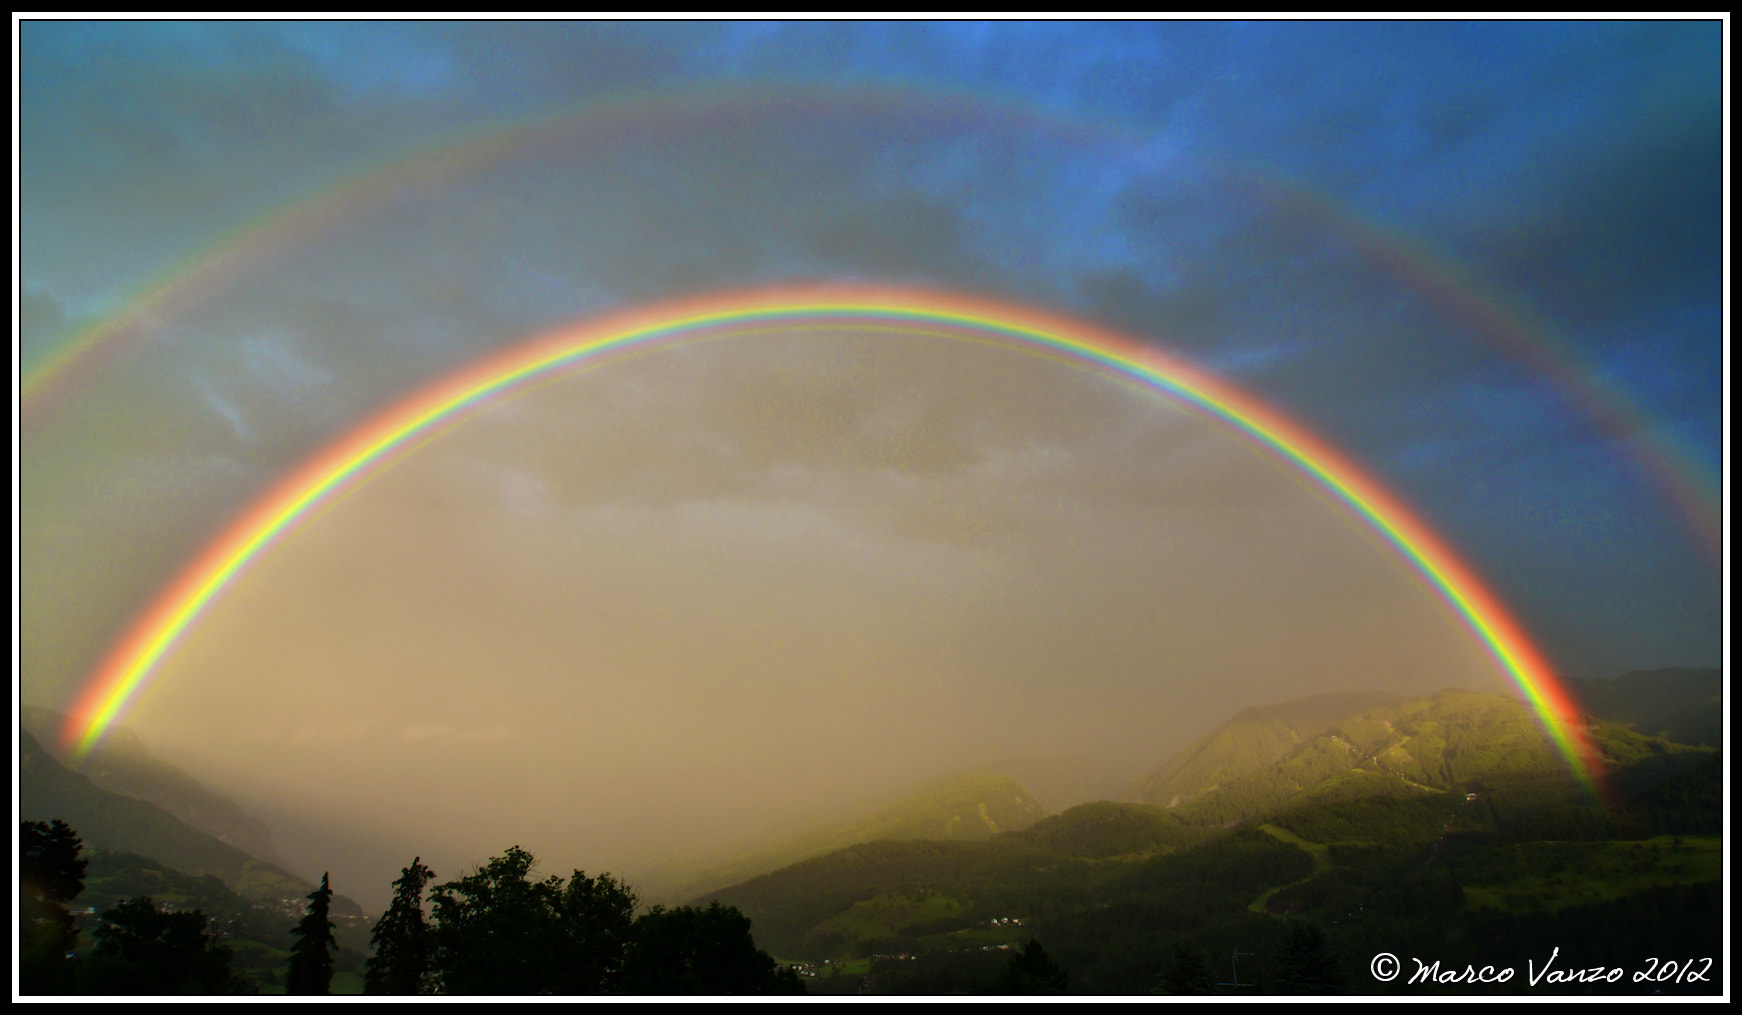 Photograph Rainbow by Marco Vanzo on 500px